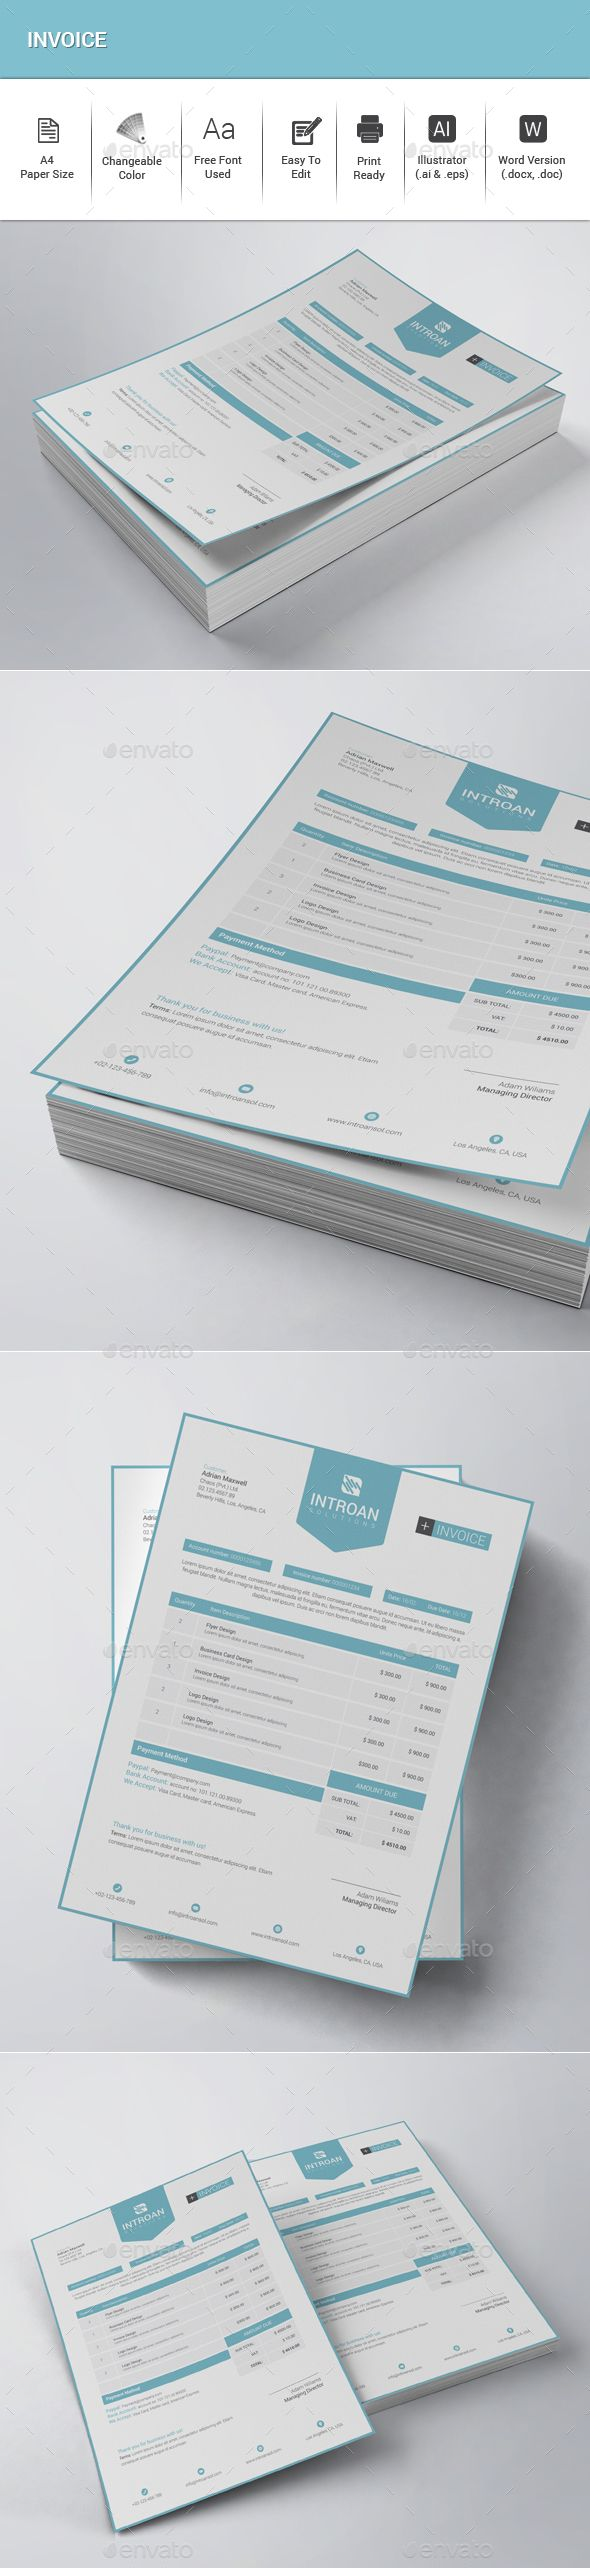 17 best ideas about letterhead sample on pinterest | letterhead, Invoice examples